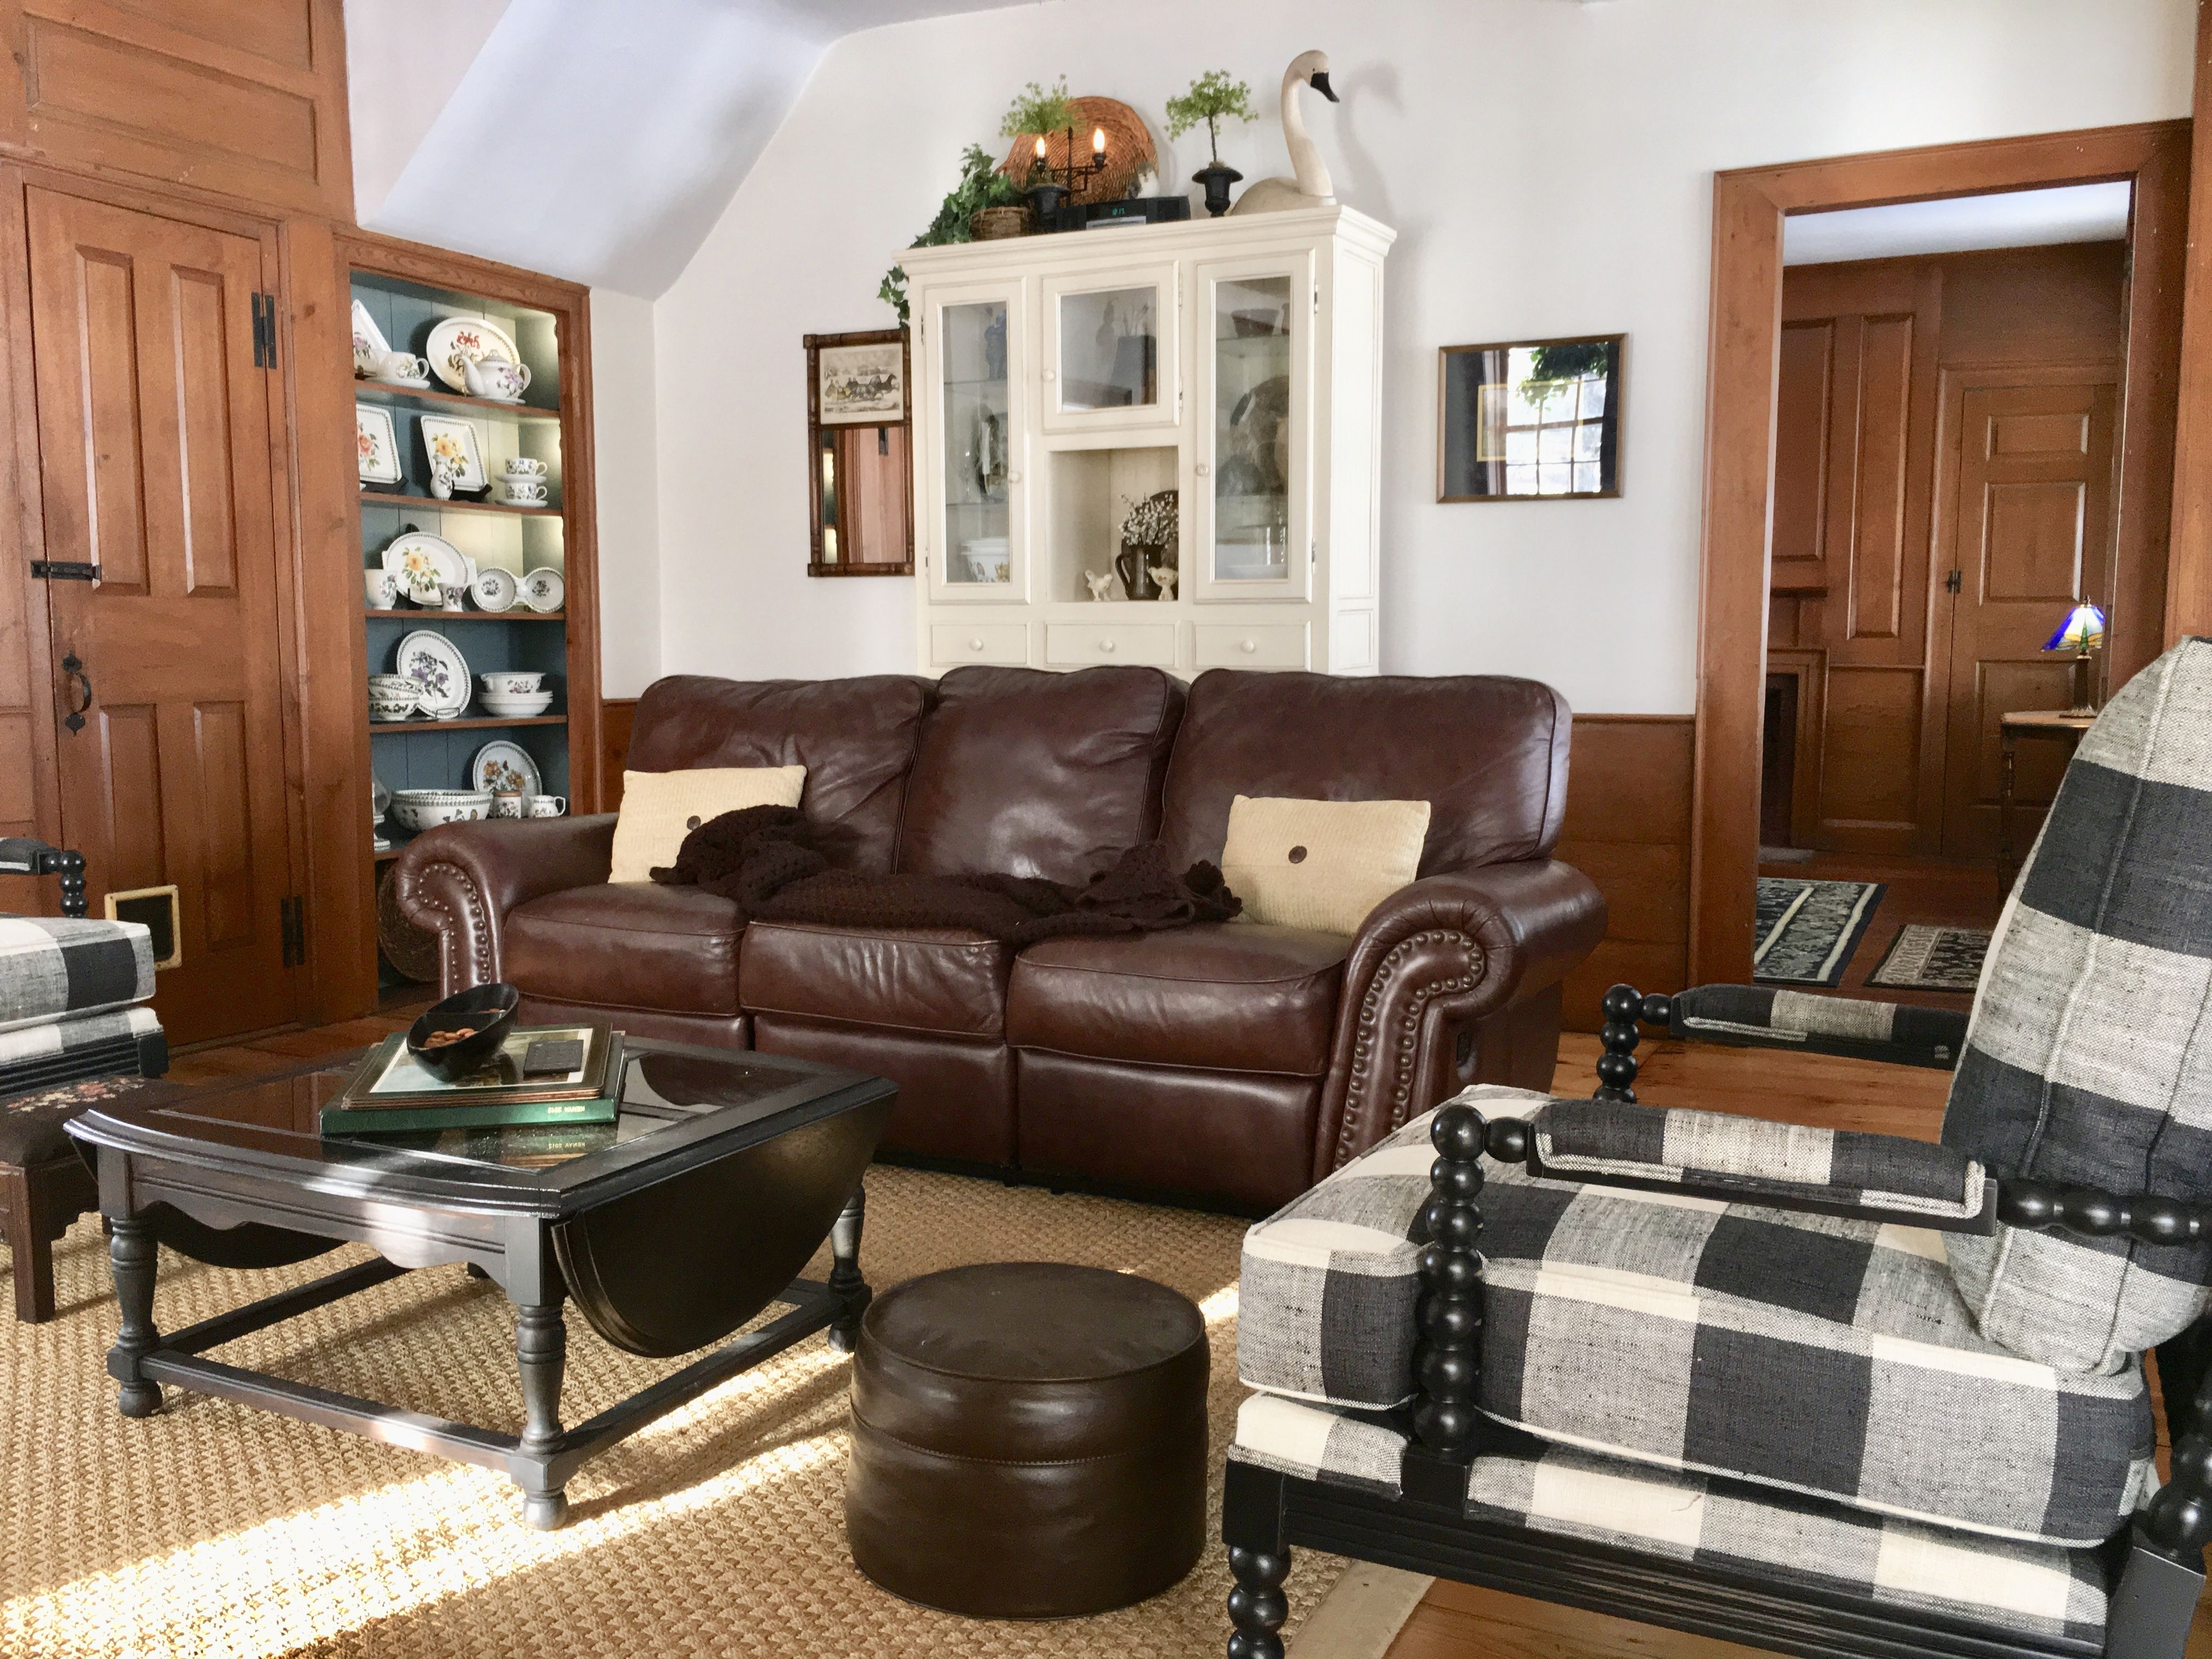 Family Room, Buffalo Checks, Brown Leather Couch, China Cabinet pertaining to Large-Scale Chinese Farmhouse Coffee Tables (Image 10 of 30)